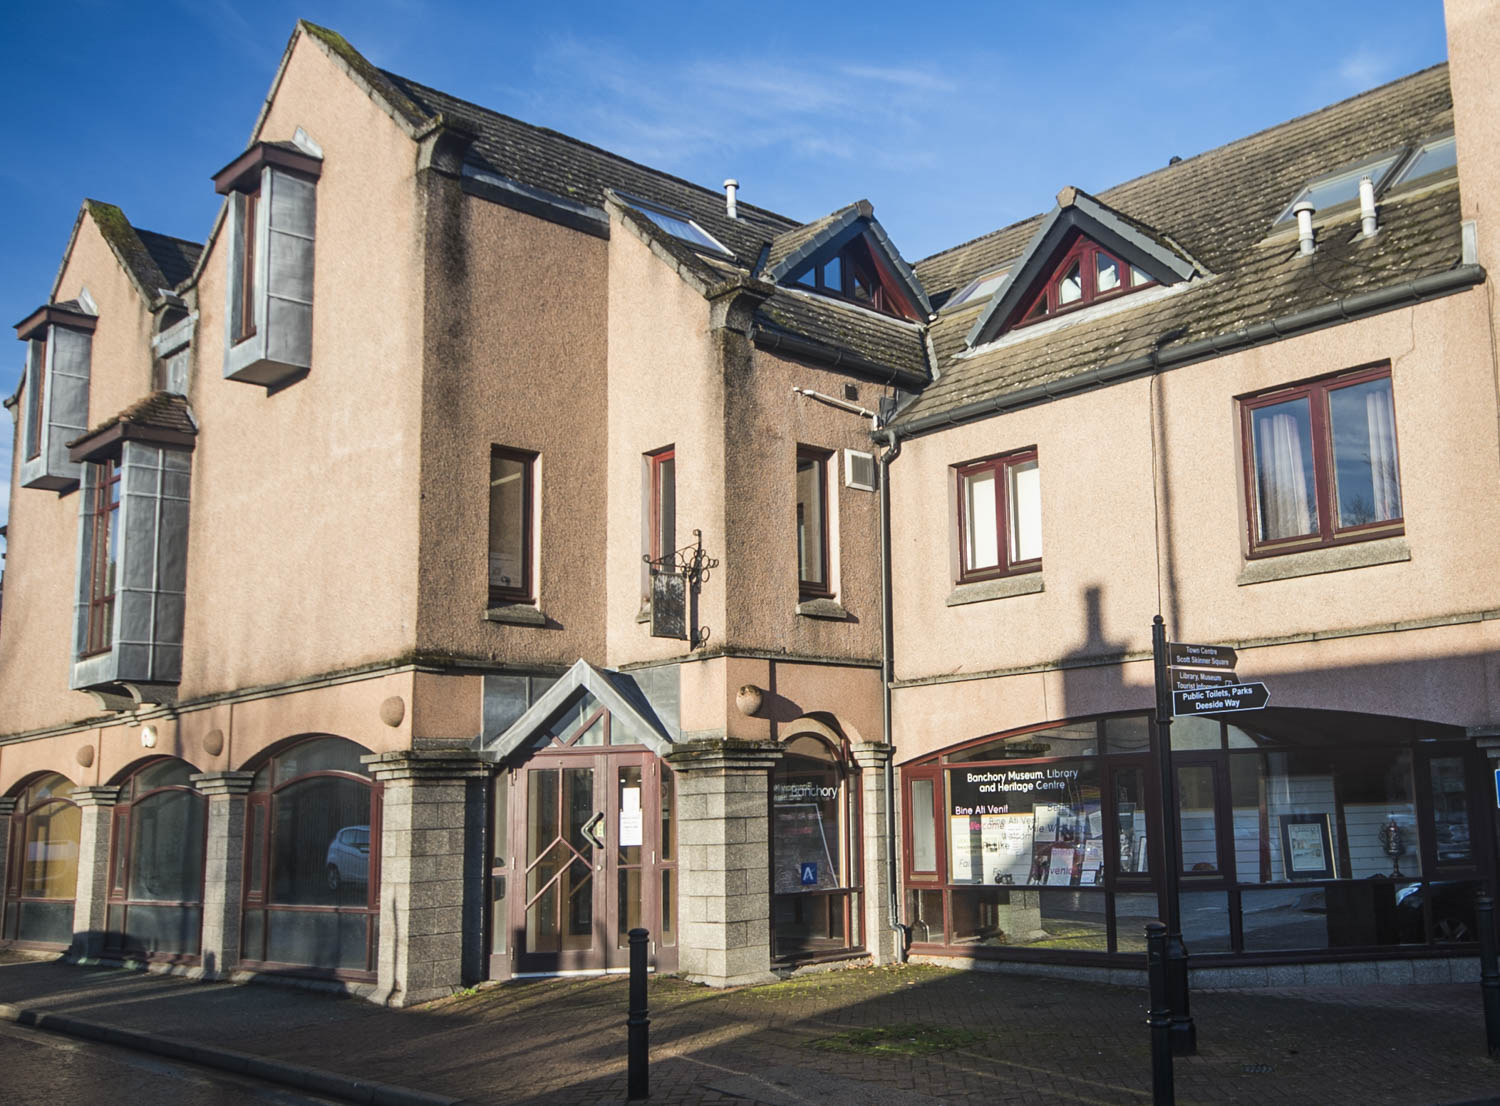 External image of the entrance to Banchory Museum.